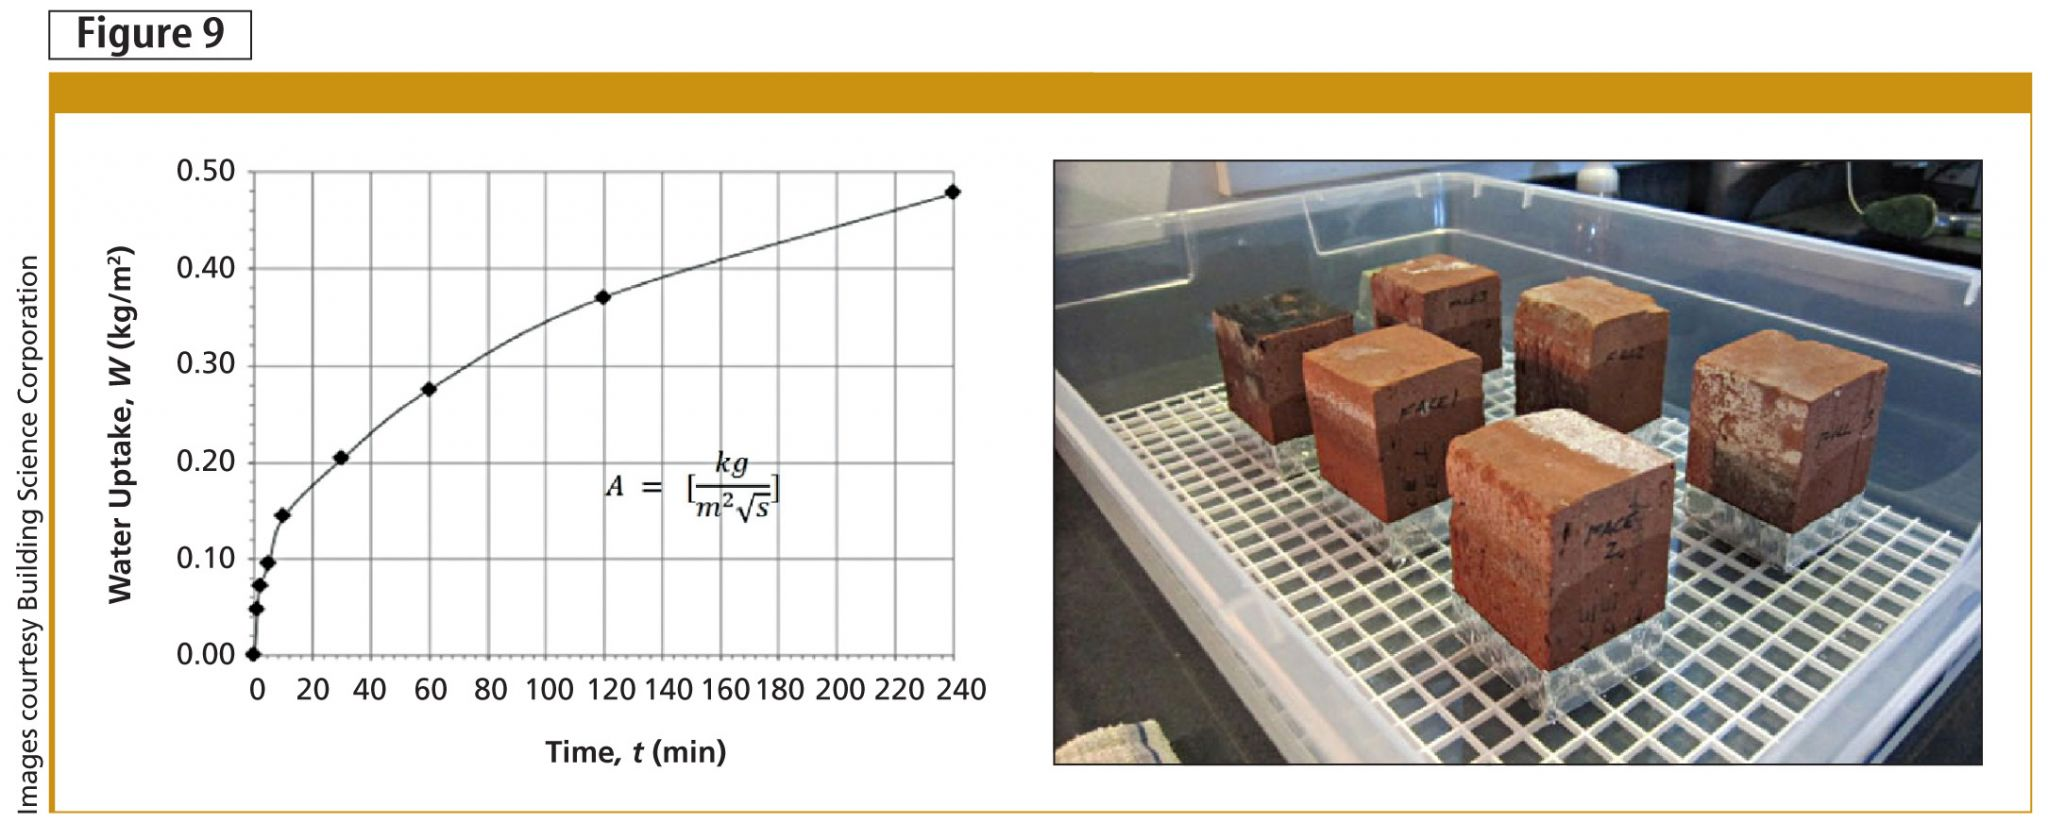 Brick ends are submersed in water, and the amount of absorbed water is weighed over time. The A-value is the slope of the initial portion of the plot and characterizes moisture transport through a brick sample.